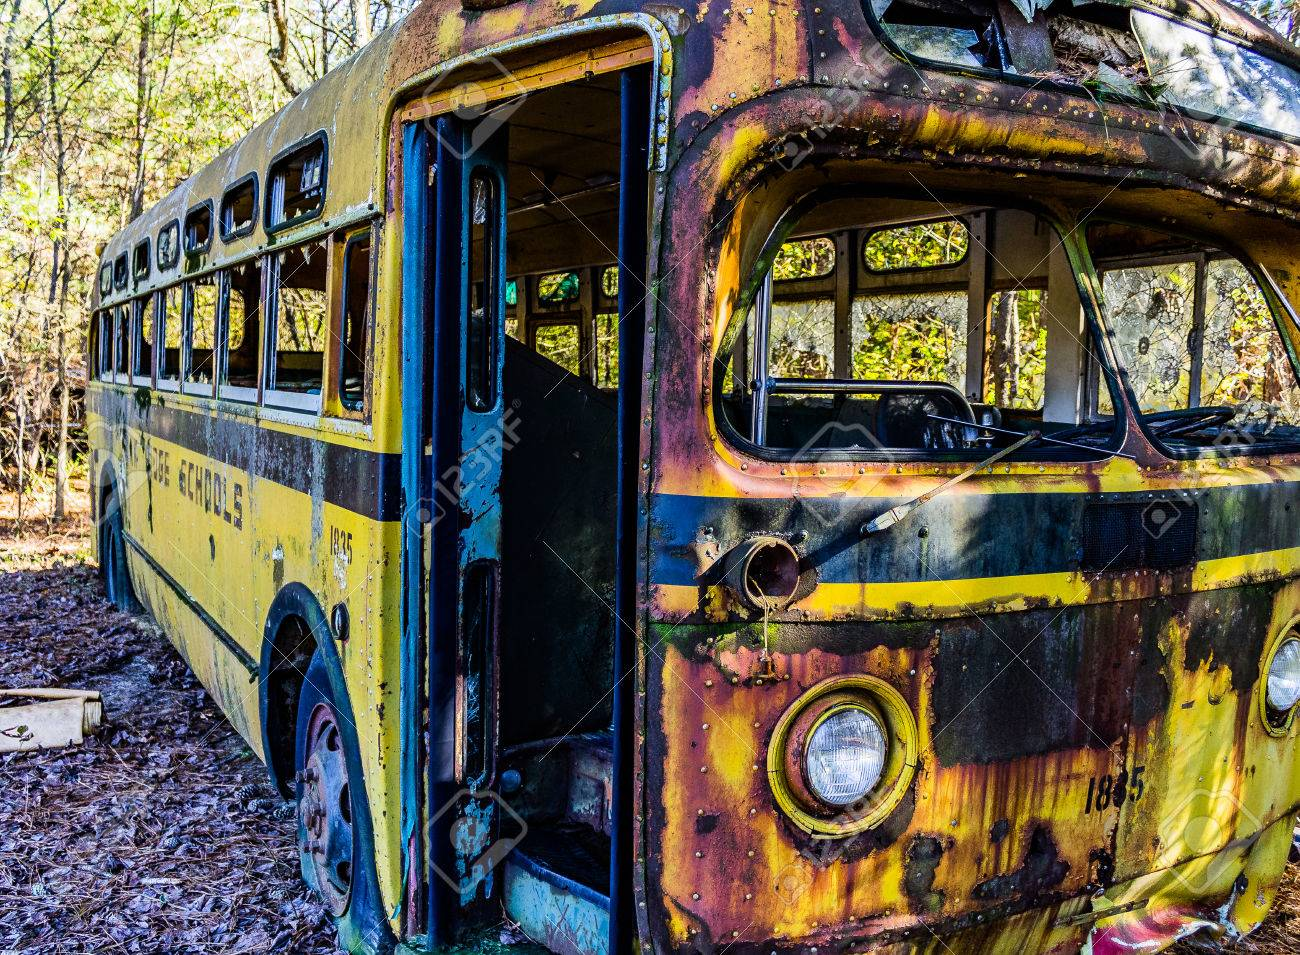 Rusty, Old, Junked Car In The Woods Stock Photo, Picture And Royalty ...